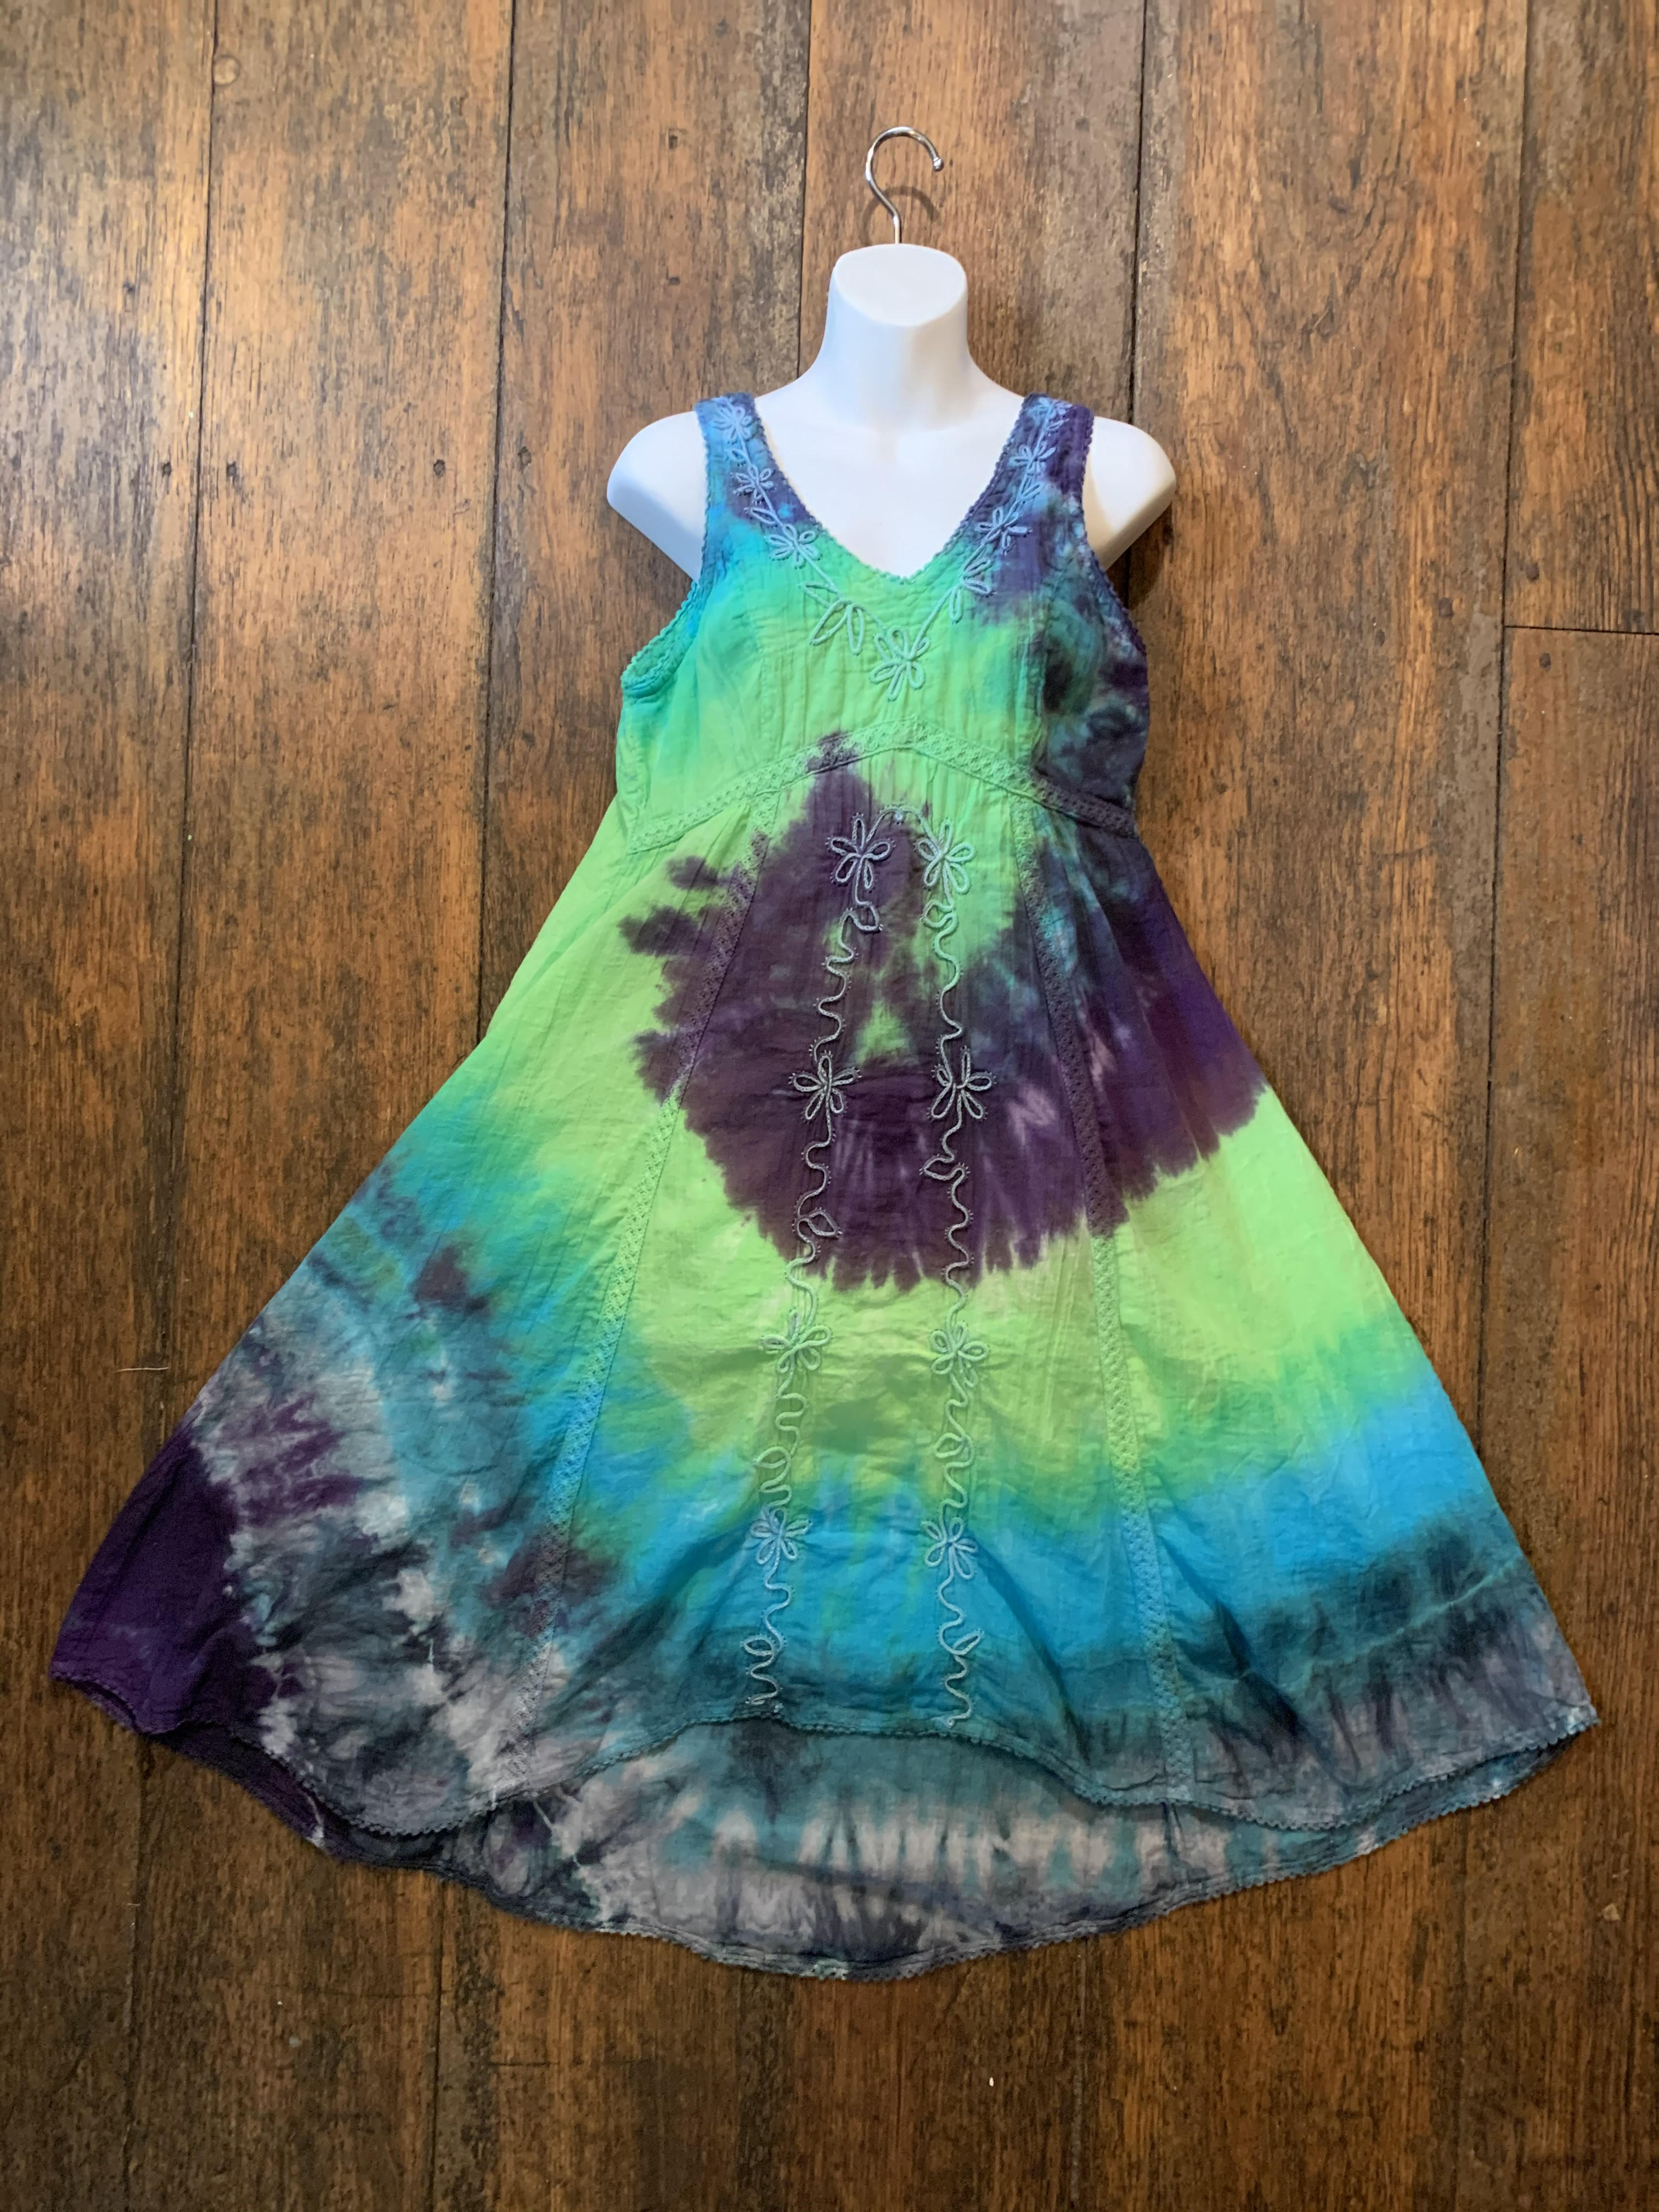 Indian Cotton, Lined, Tie Dye Sundress